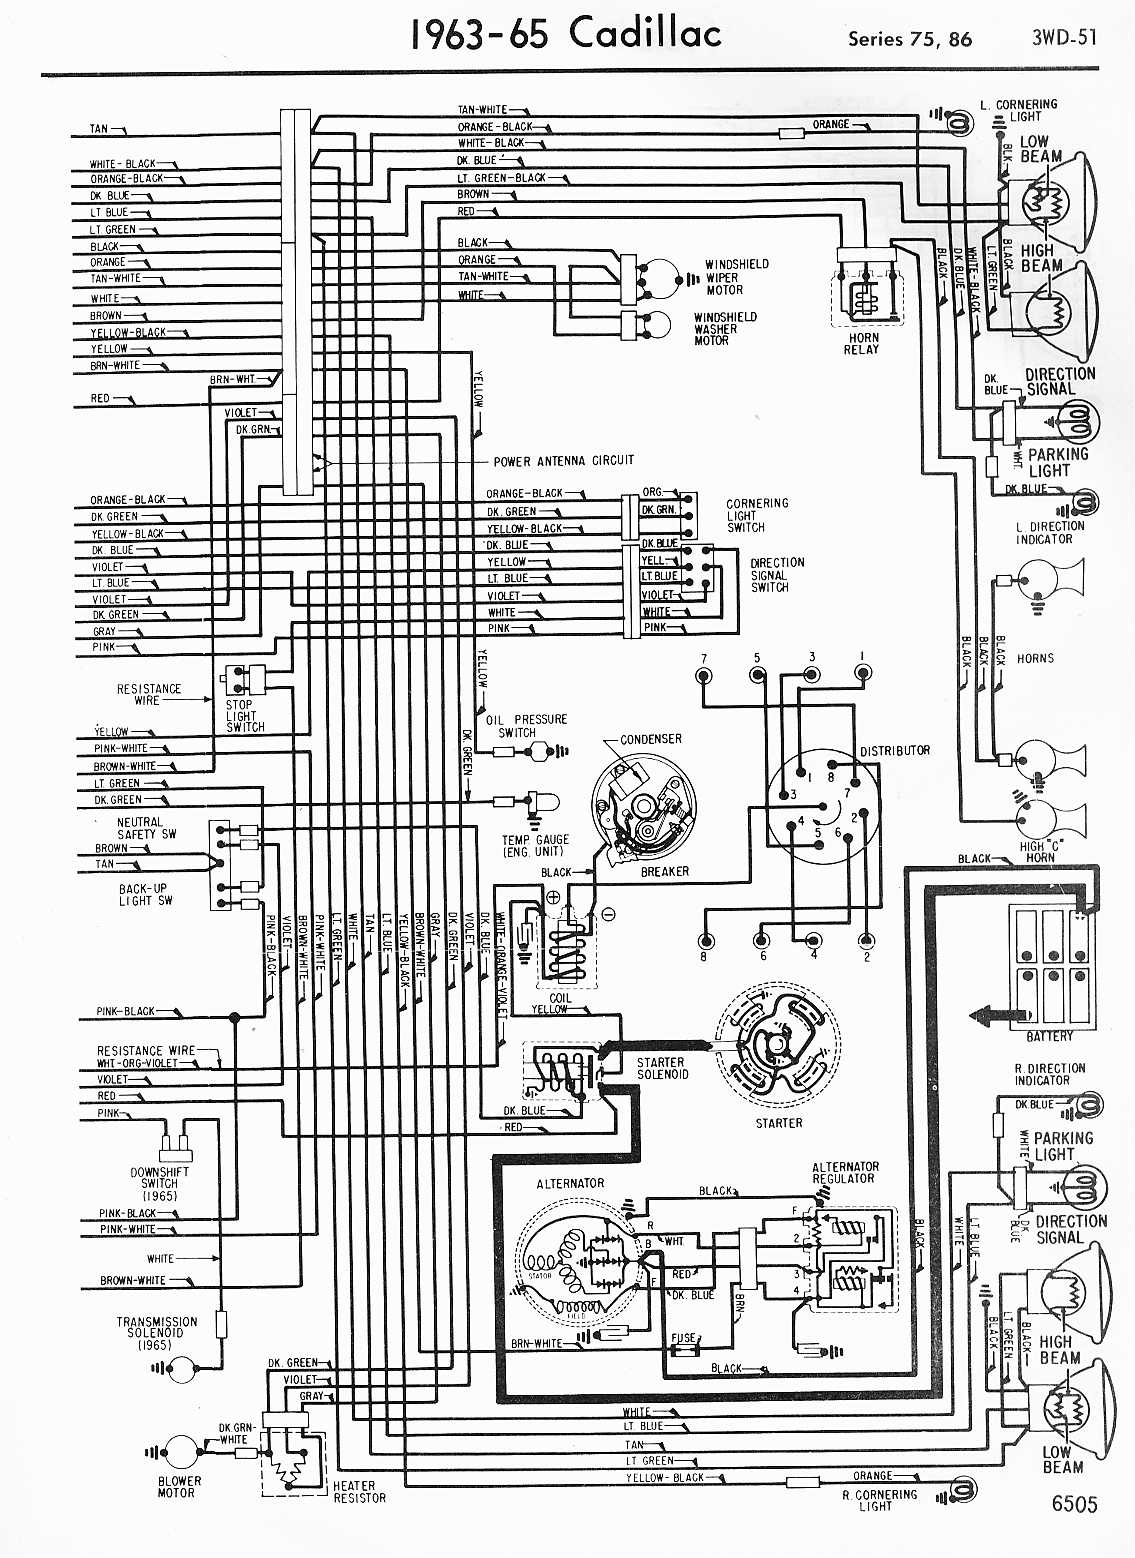 MWireCadi65_3WD 051 cadillac wiring diagrams 1957 1965 92 cadillac deville fuse box diagram at reclaimingppi.co